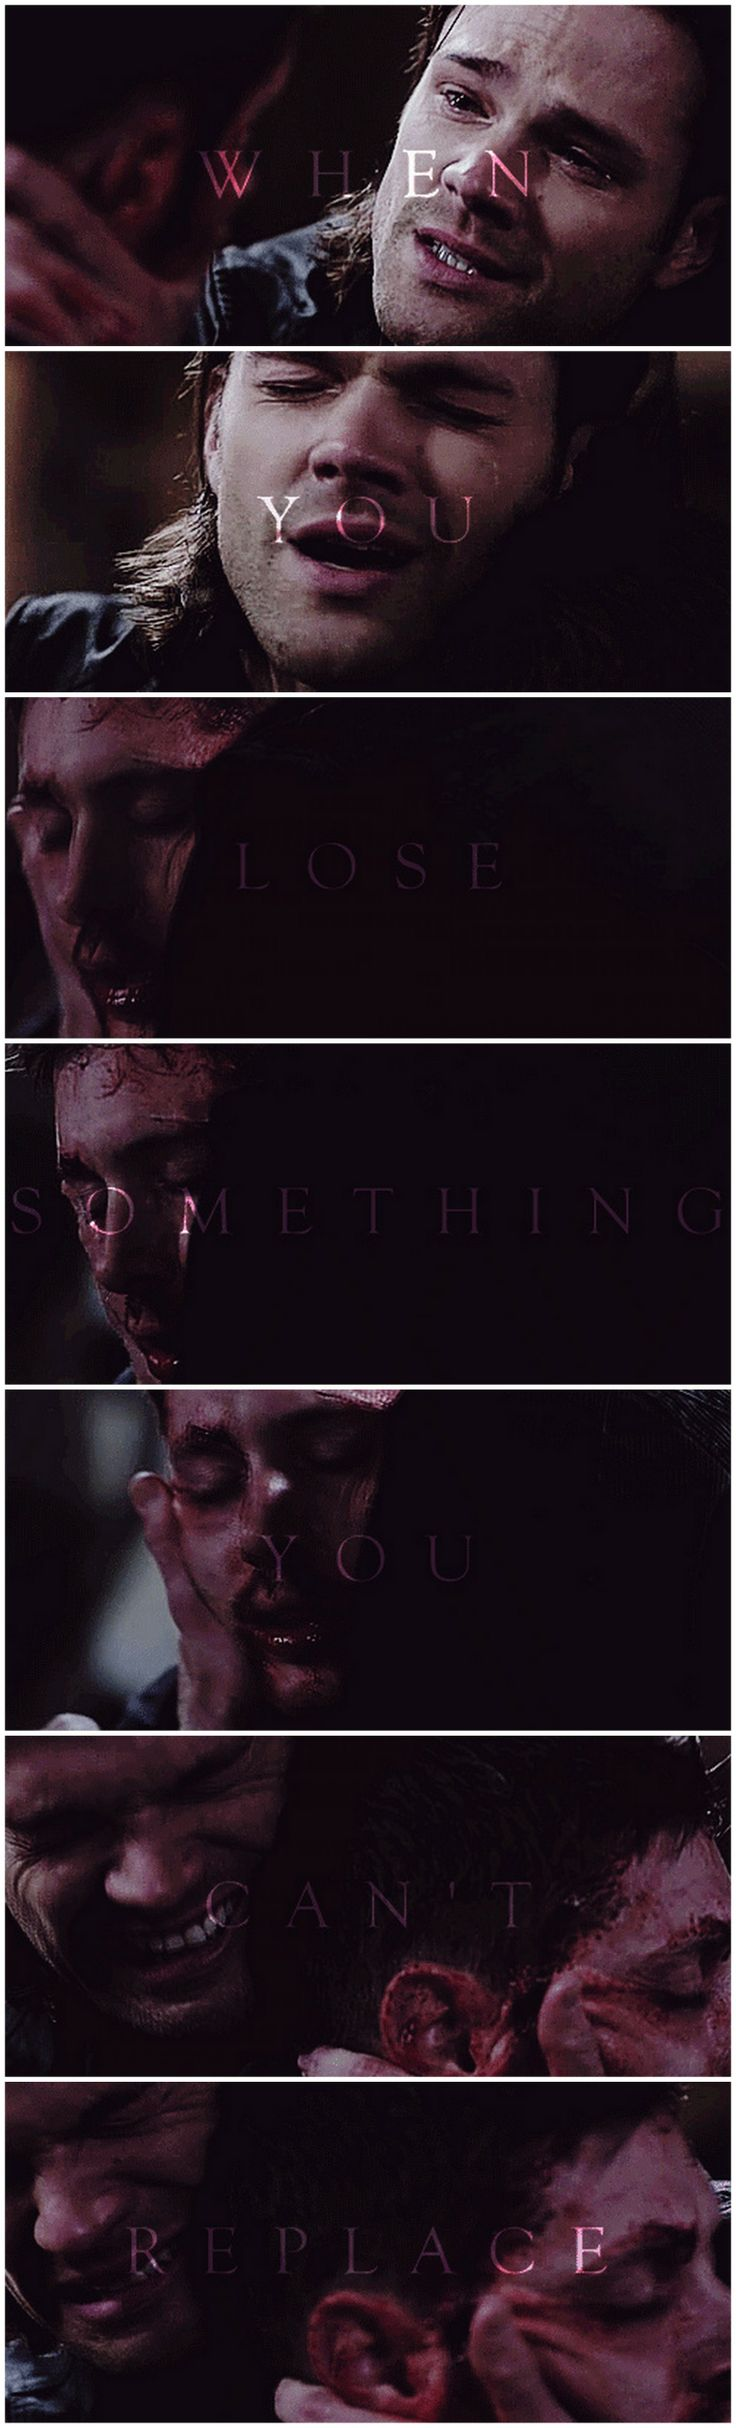 Lights will guide you home, and ignite your bones, and I will try to fix you - 9x23 Do You Believe In Miracles [gifset]